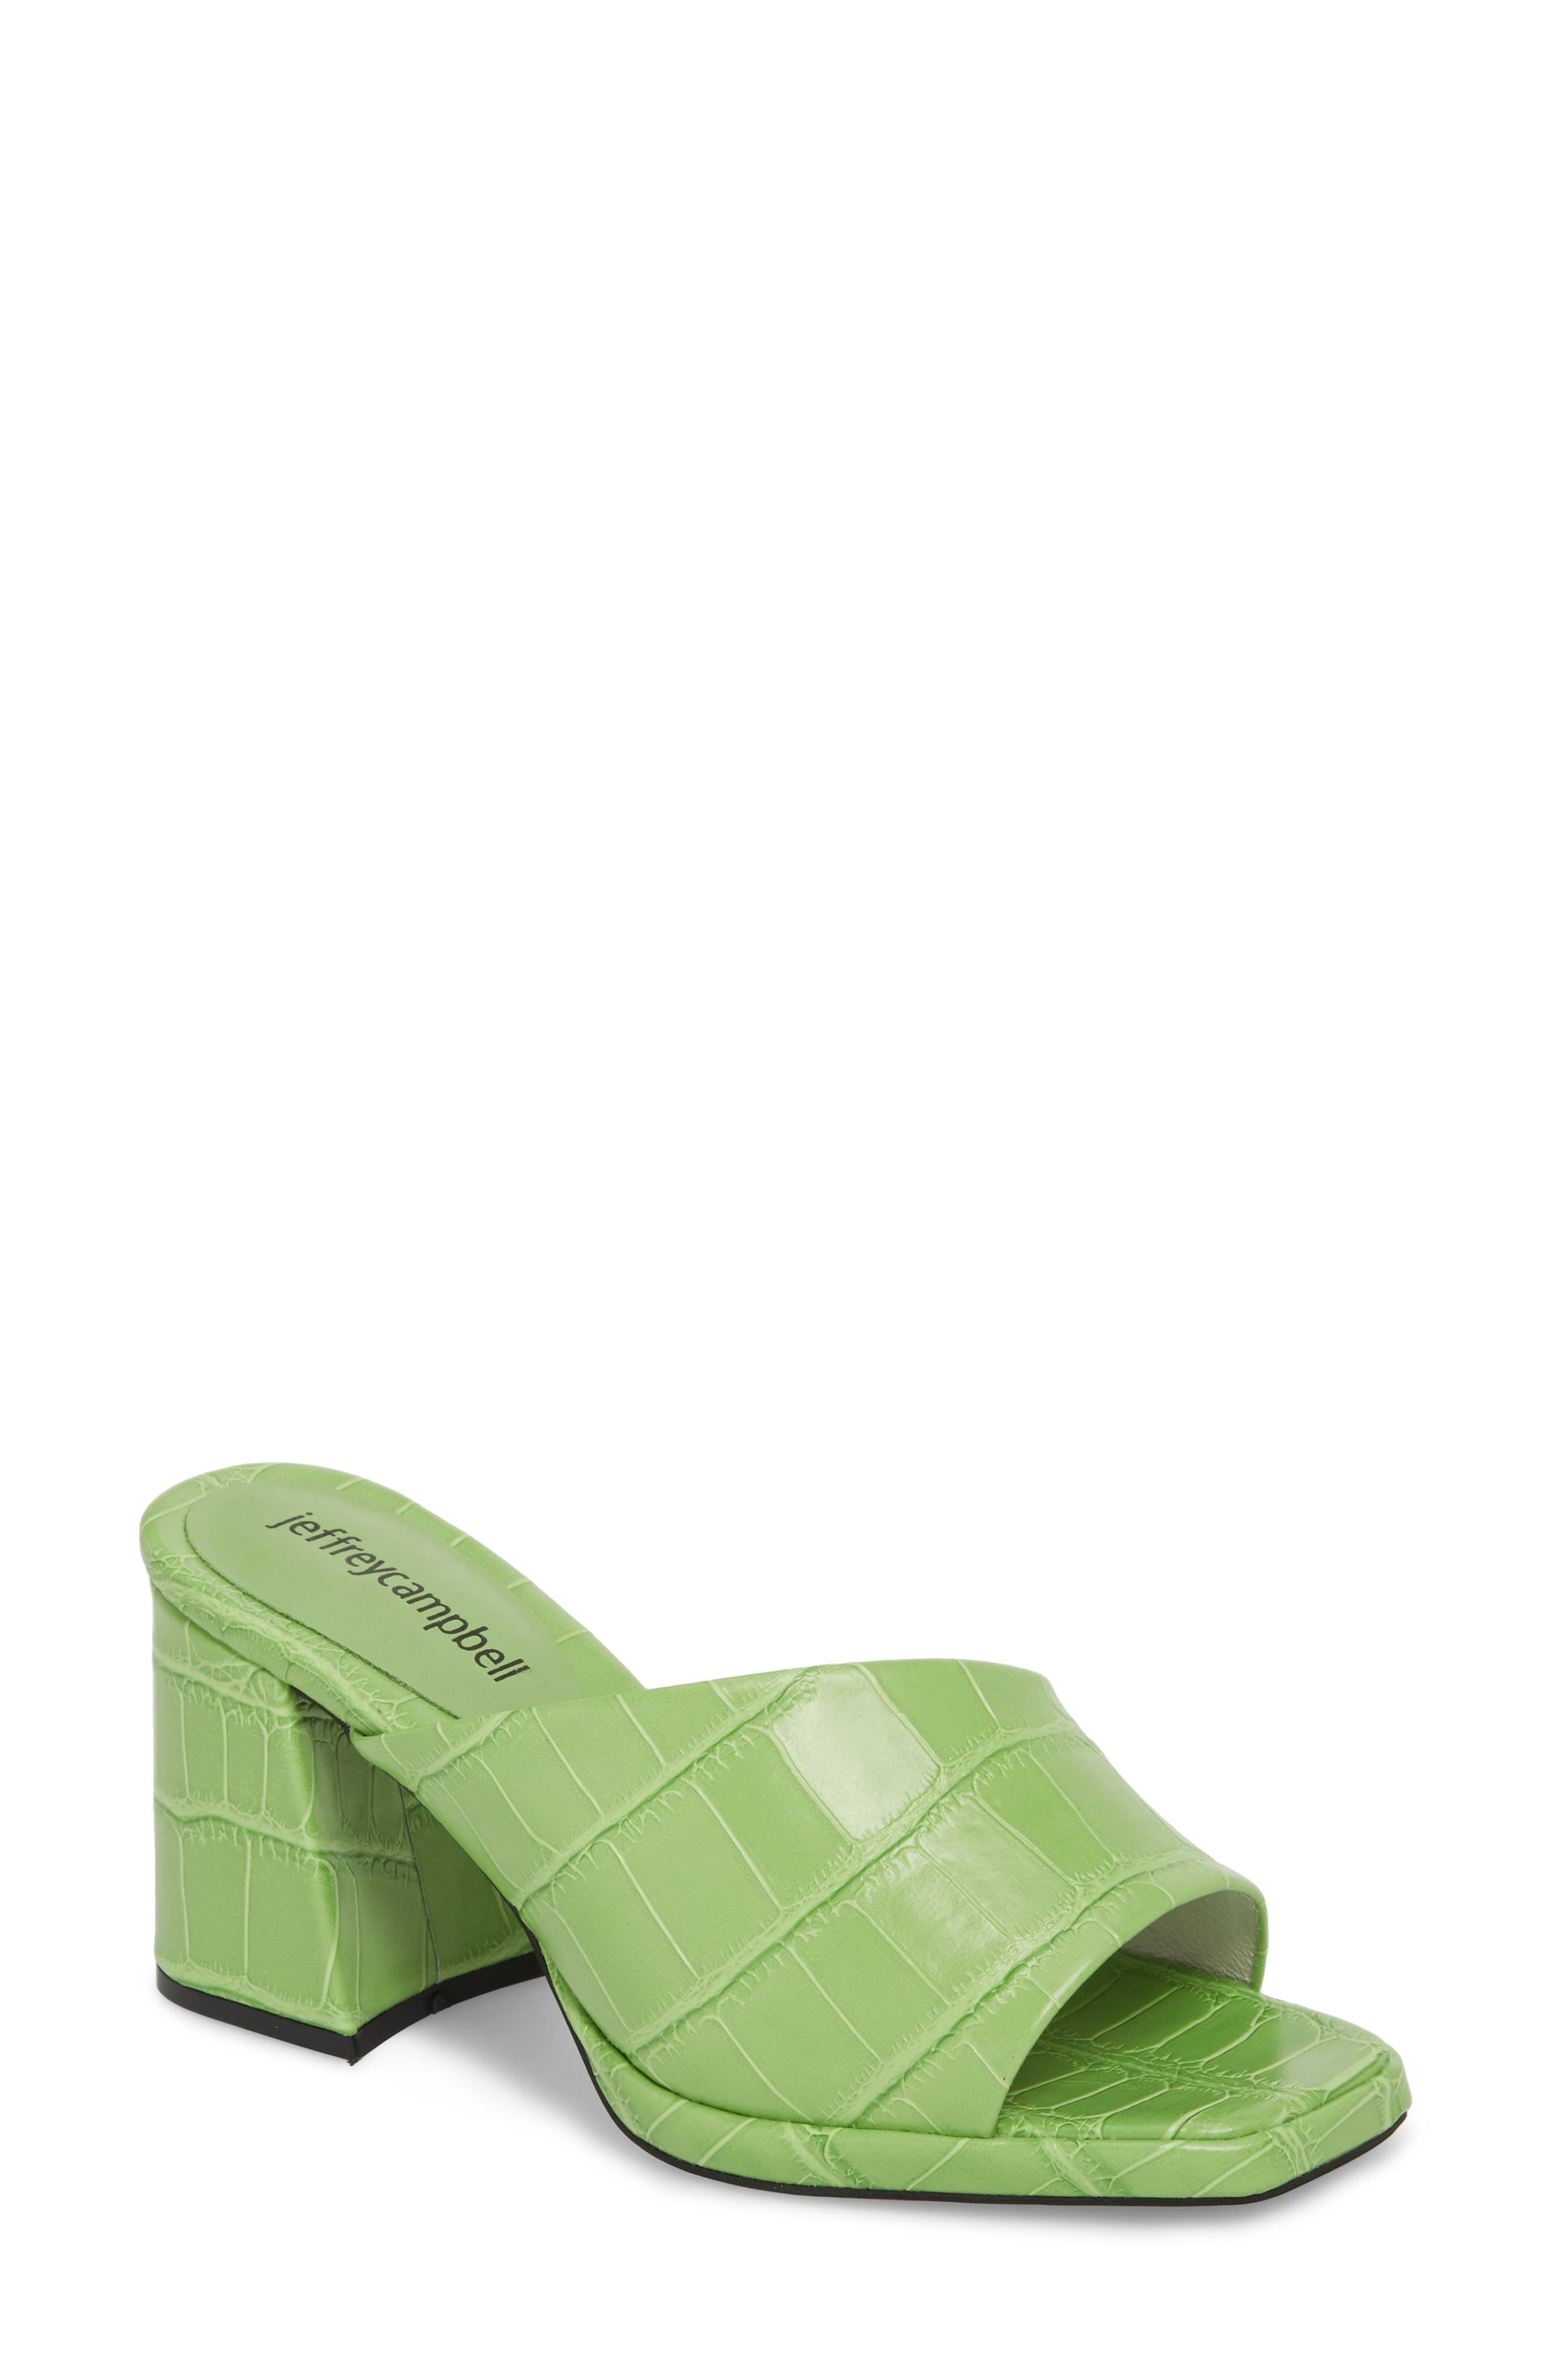 Suzuci Sandal,                             Main thumbnail 1, color,                             Green Leather